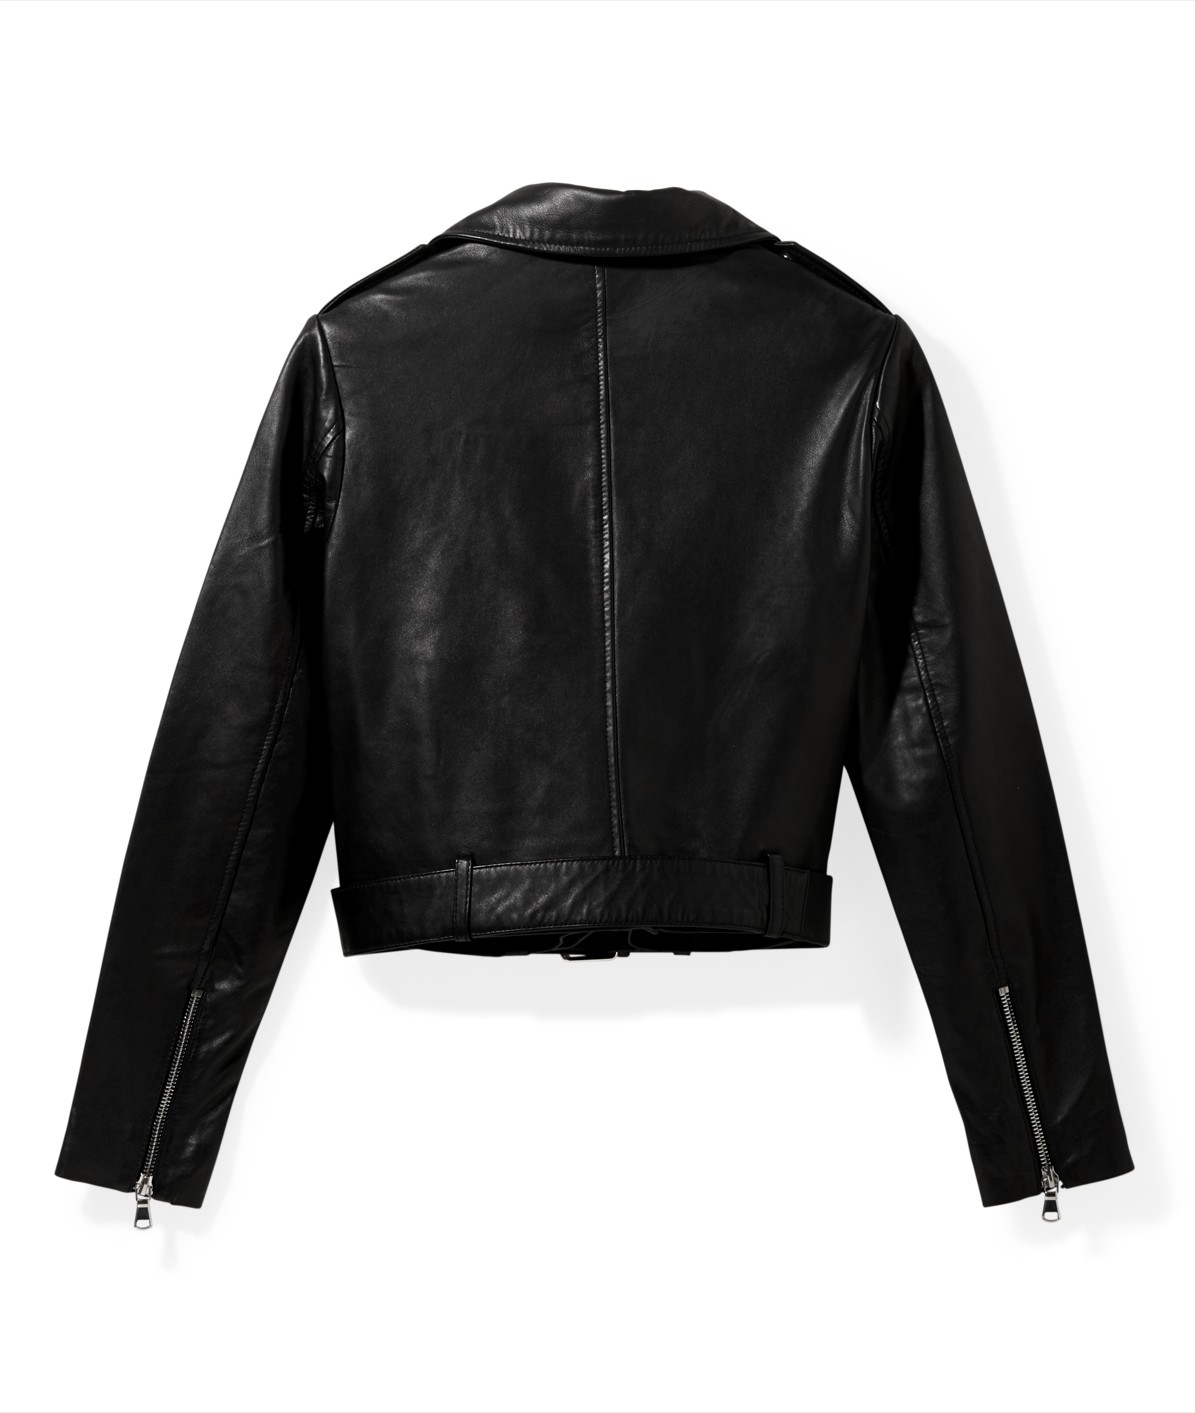 Leather jacket from liebeskind